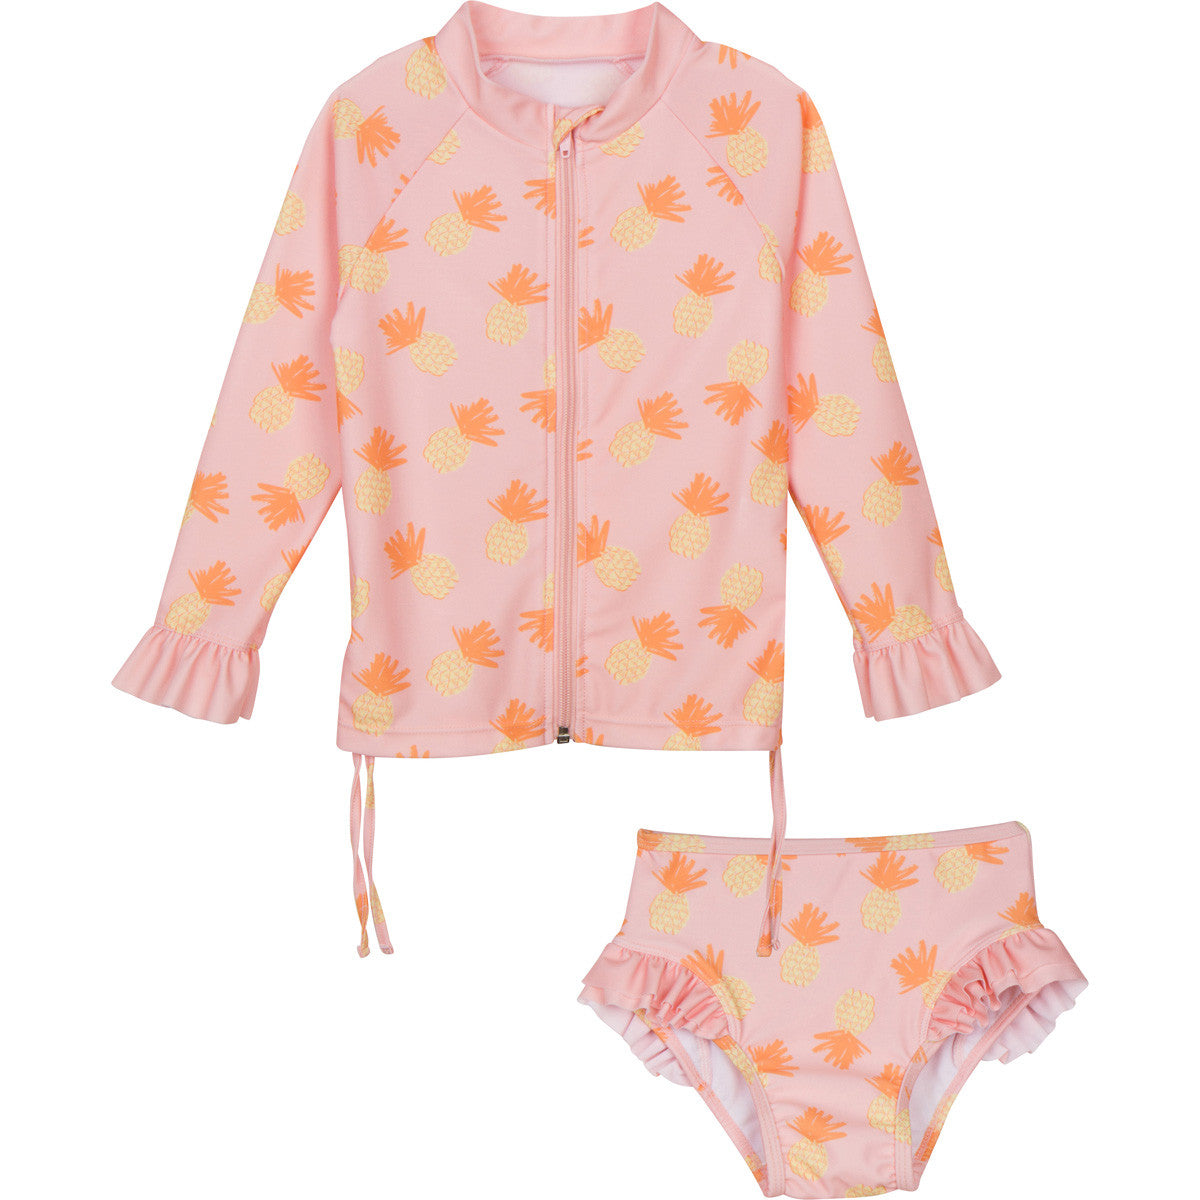 360c75cc9c465 Baby Girl Long Sleeve Girl Rash Guard Swimsuit Set (2 Piece) -